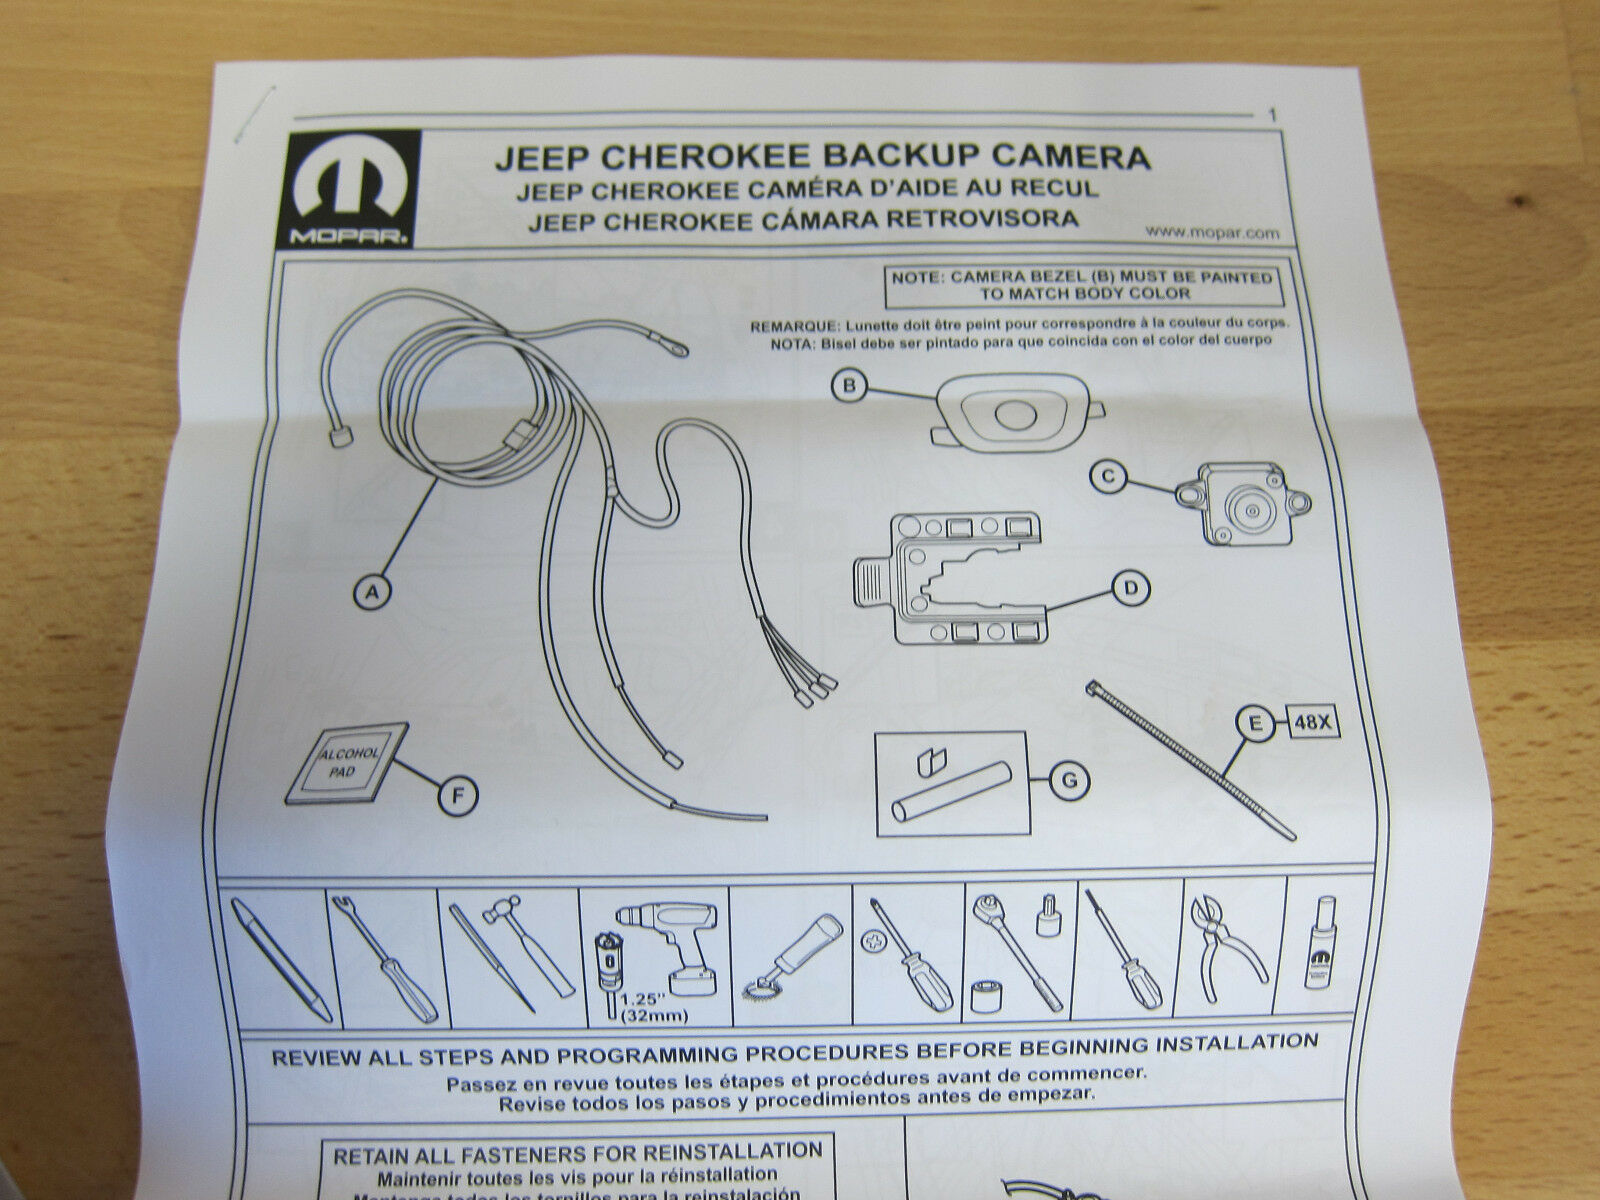 Jeep Backup Camera Wiring Diagram Explained Diagrams F150 2014 2017 Cherokee Rear View Reverse Back Up Kit Mopar F 150 Aftermarket Wire